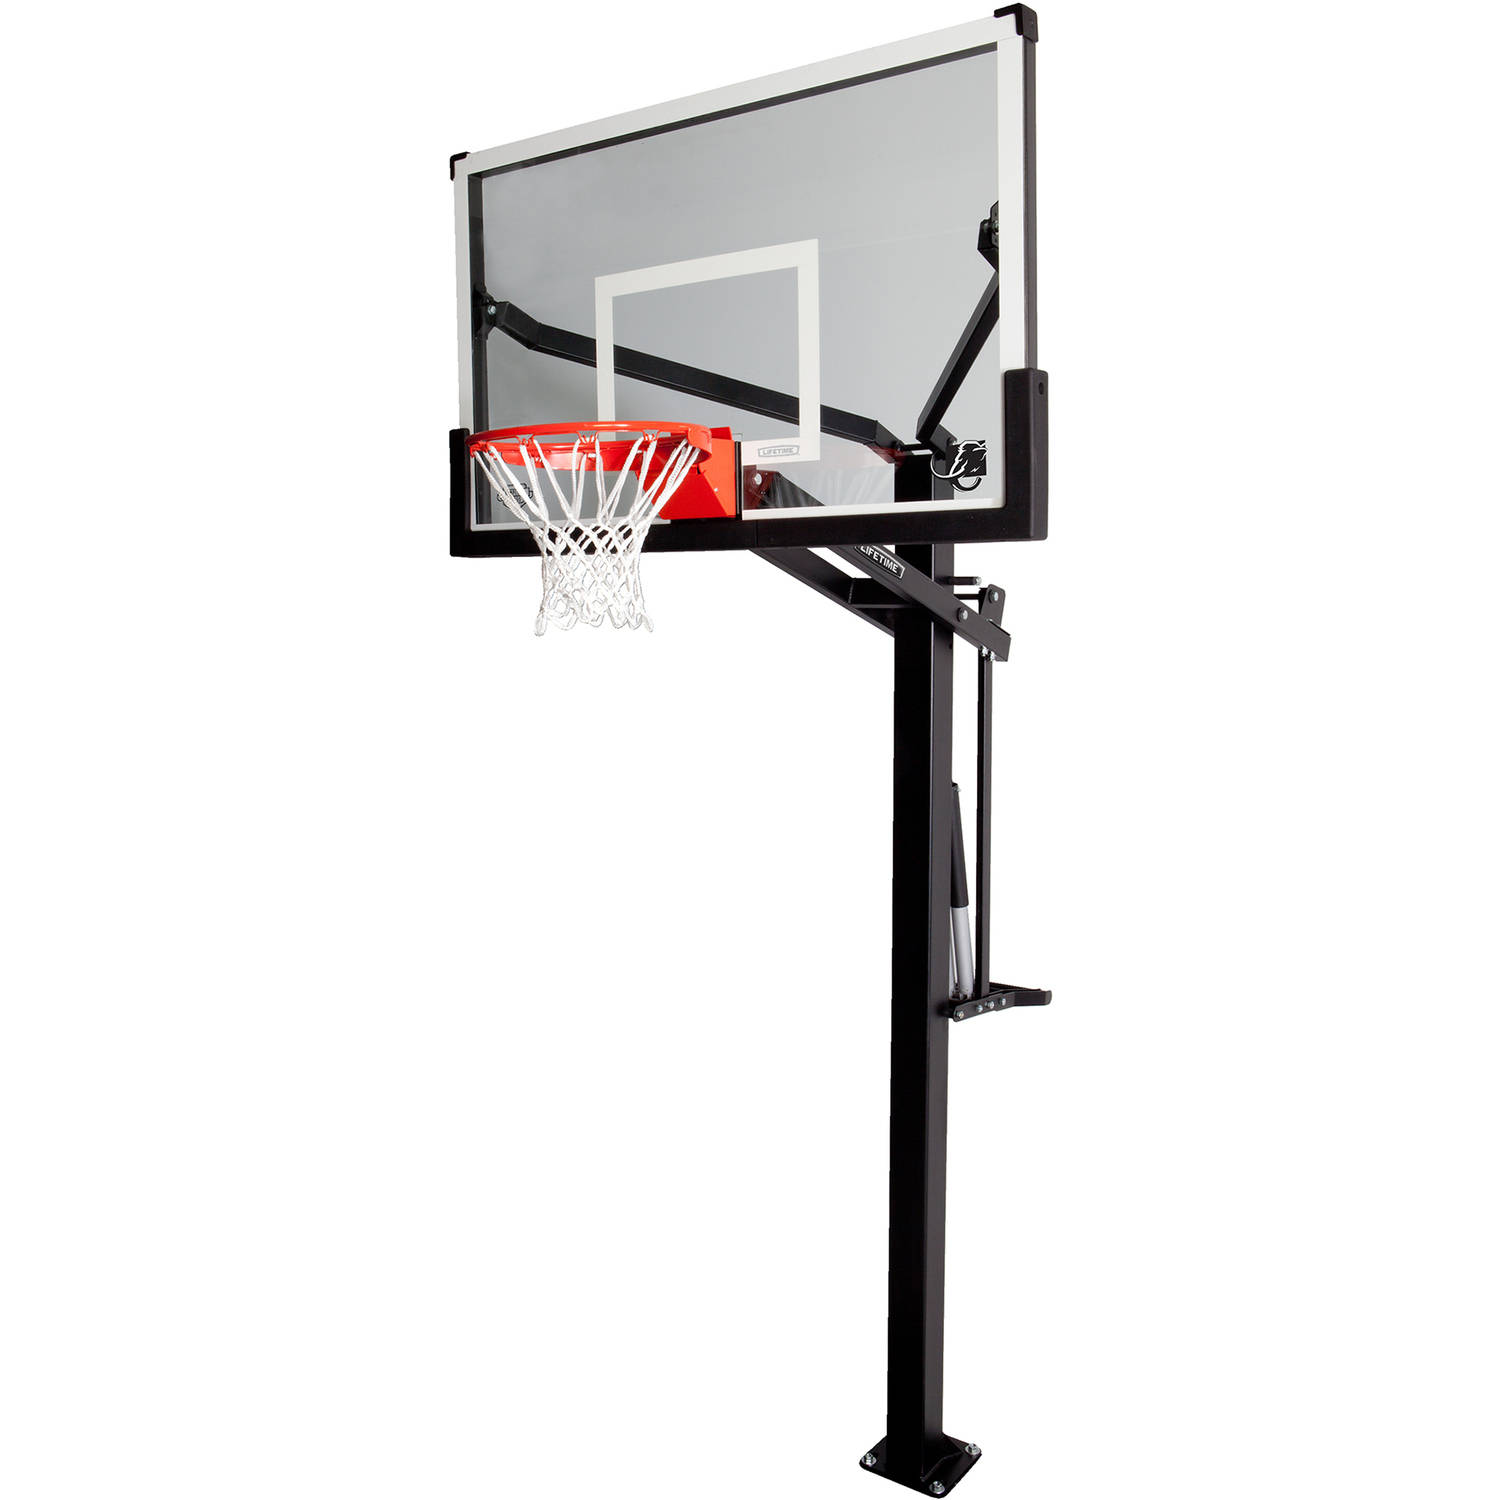 LIFETIME PRODUCTS INC Lifetime 54 Mammoth Tempered Glass In - Ground Infinite Adjustable Basketball System, 90179